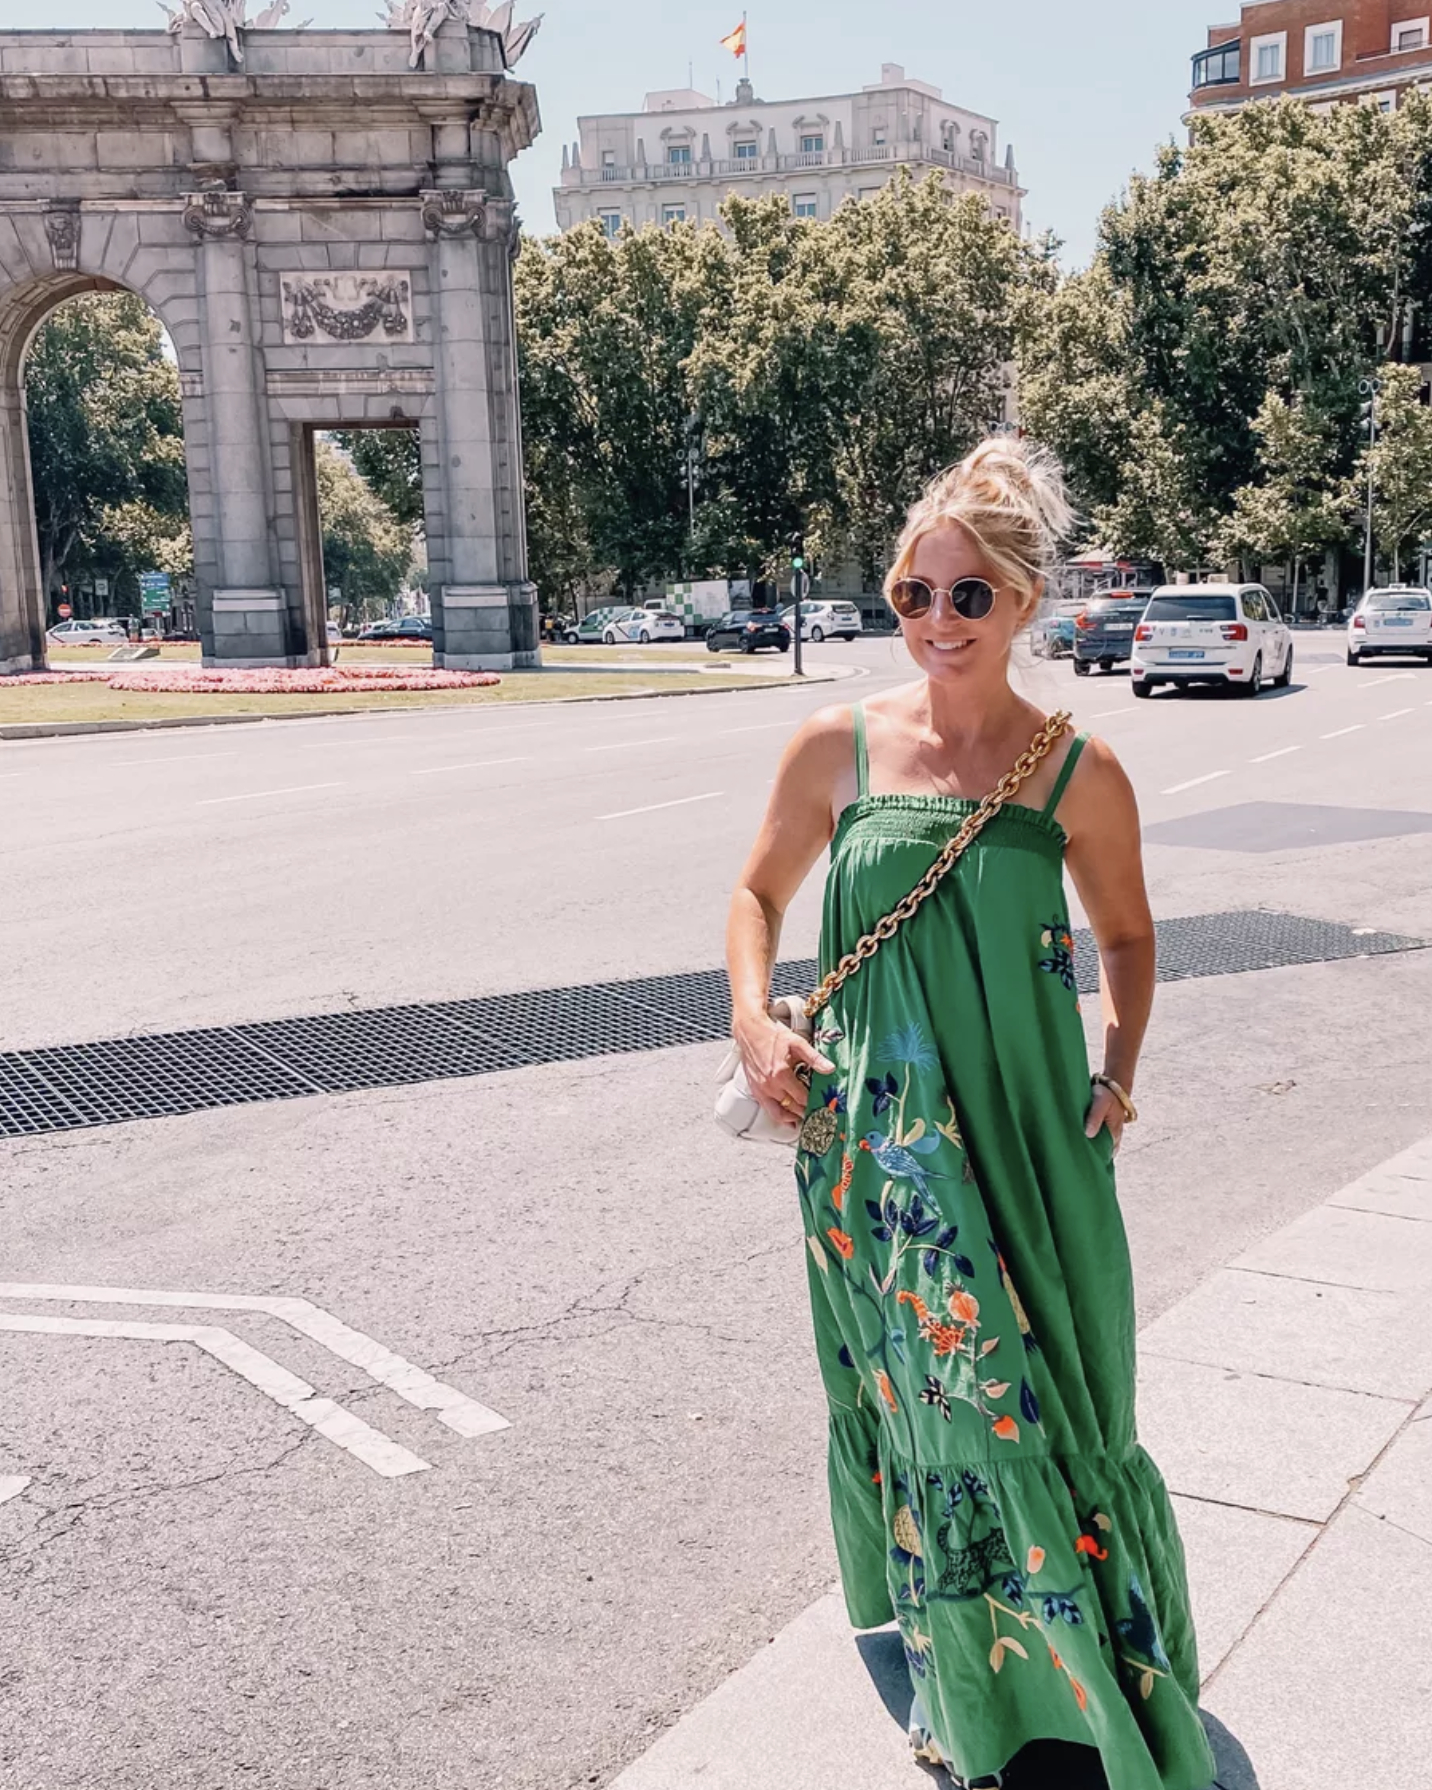 move to spain, move to madrid, why move to spain, where to move in spain, moving to spain, how to move to spain, where to live in spain, Erin Busbee, green anthropologie dress